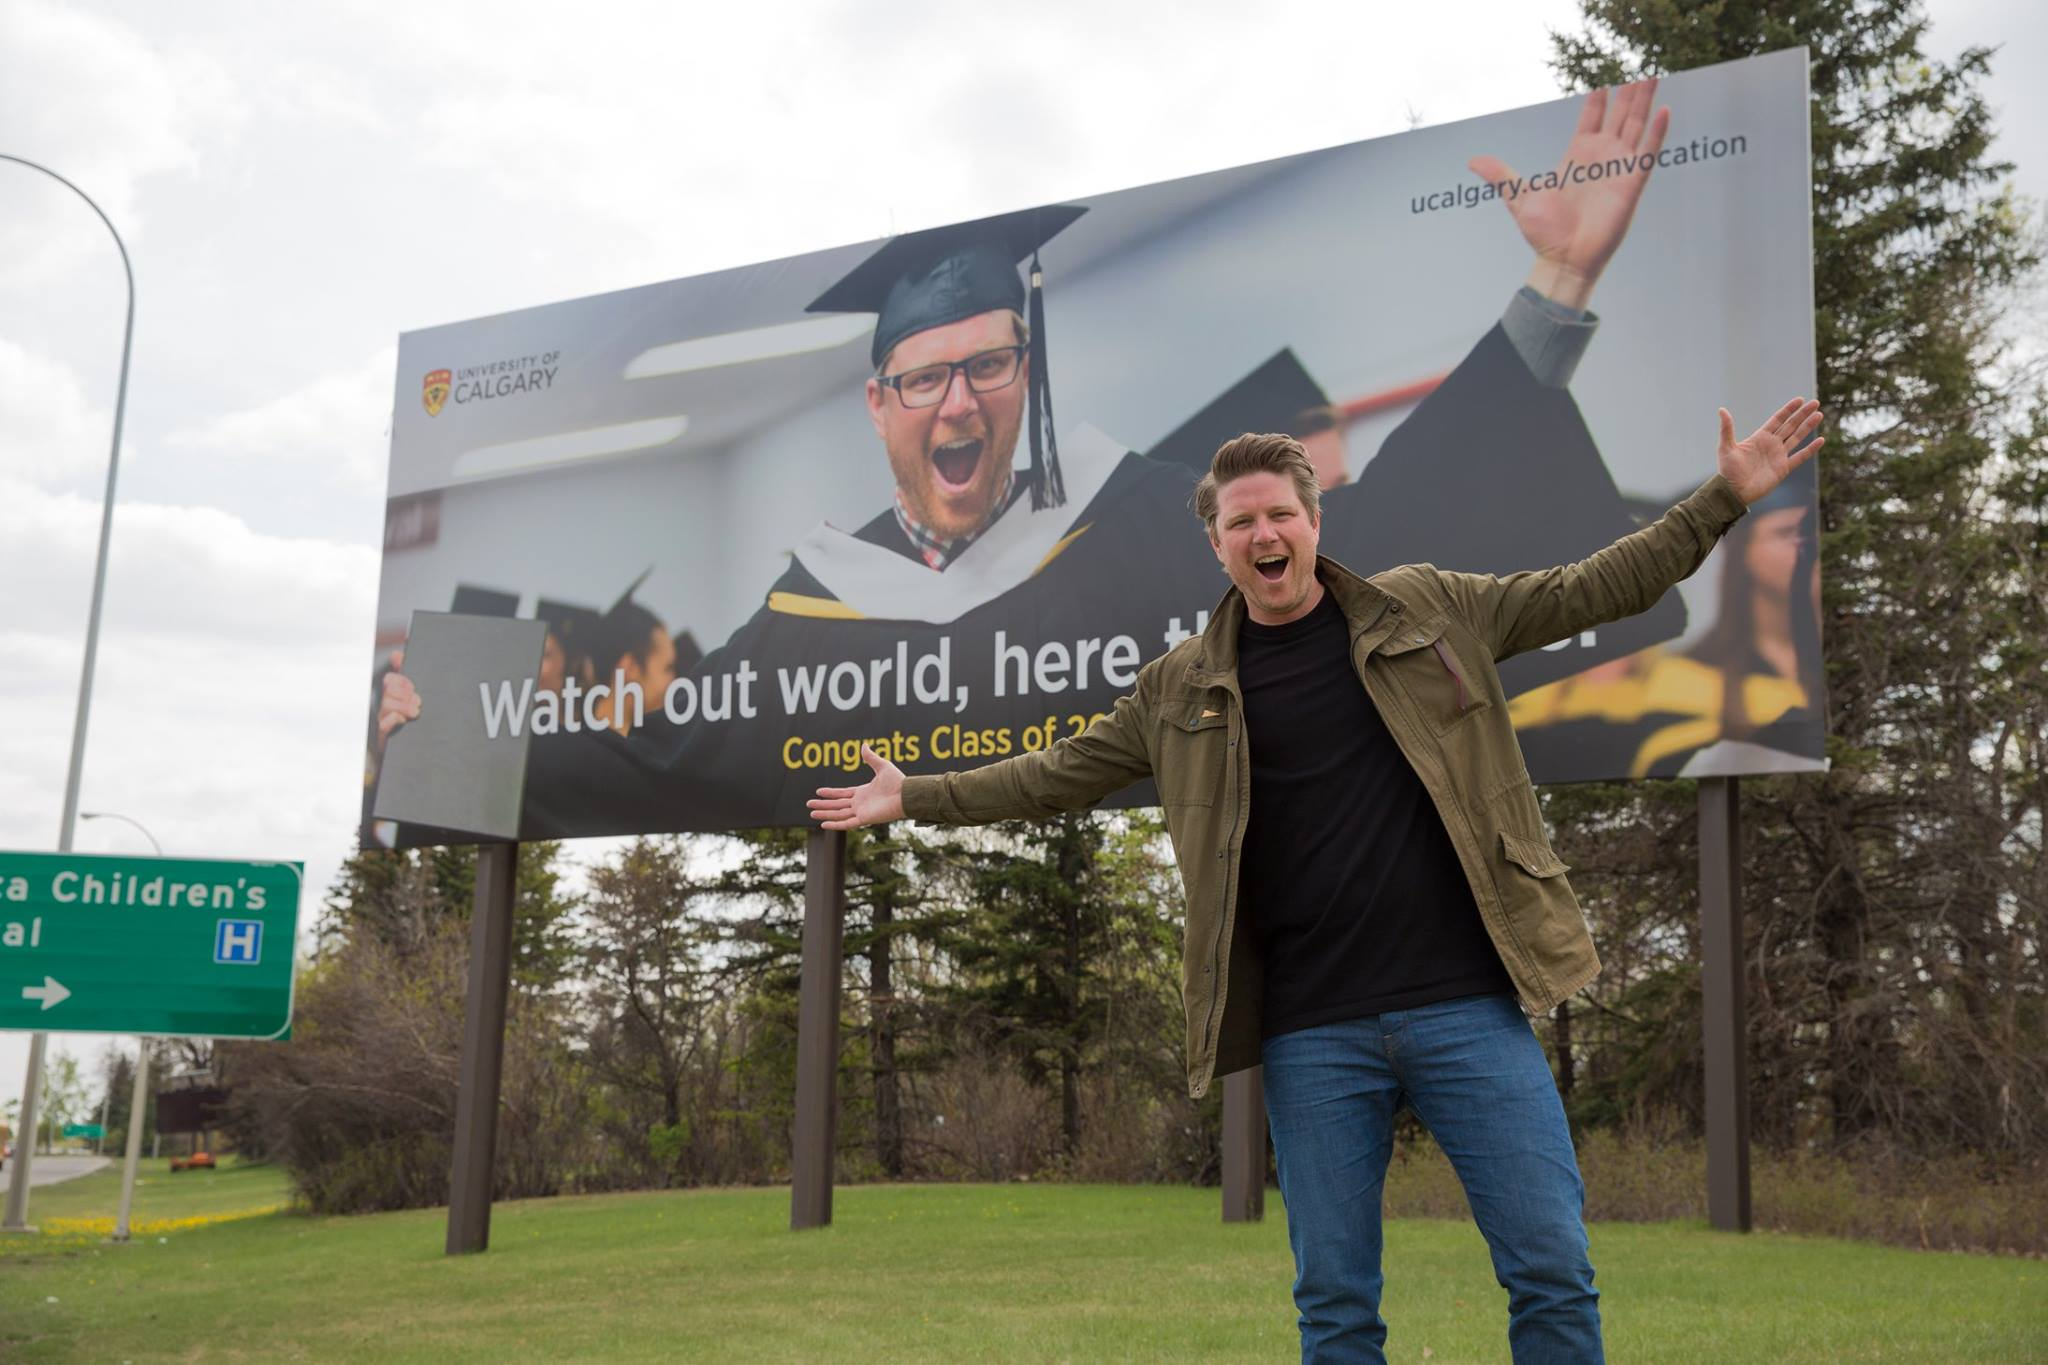 Standing in front of a massive billboard I was featured on to promote 2015 spring convocation at the University of Calgary.